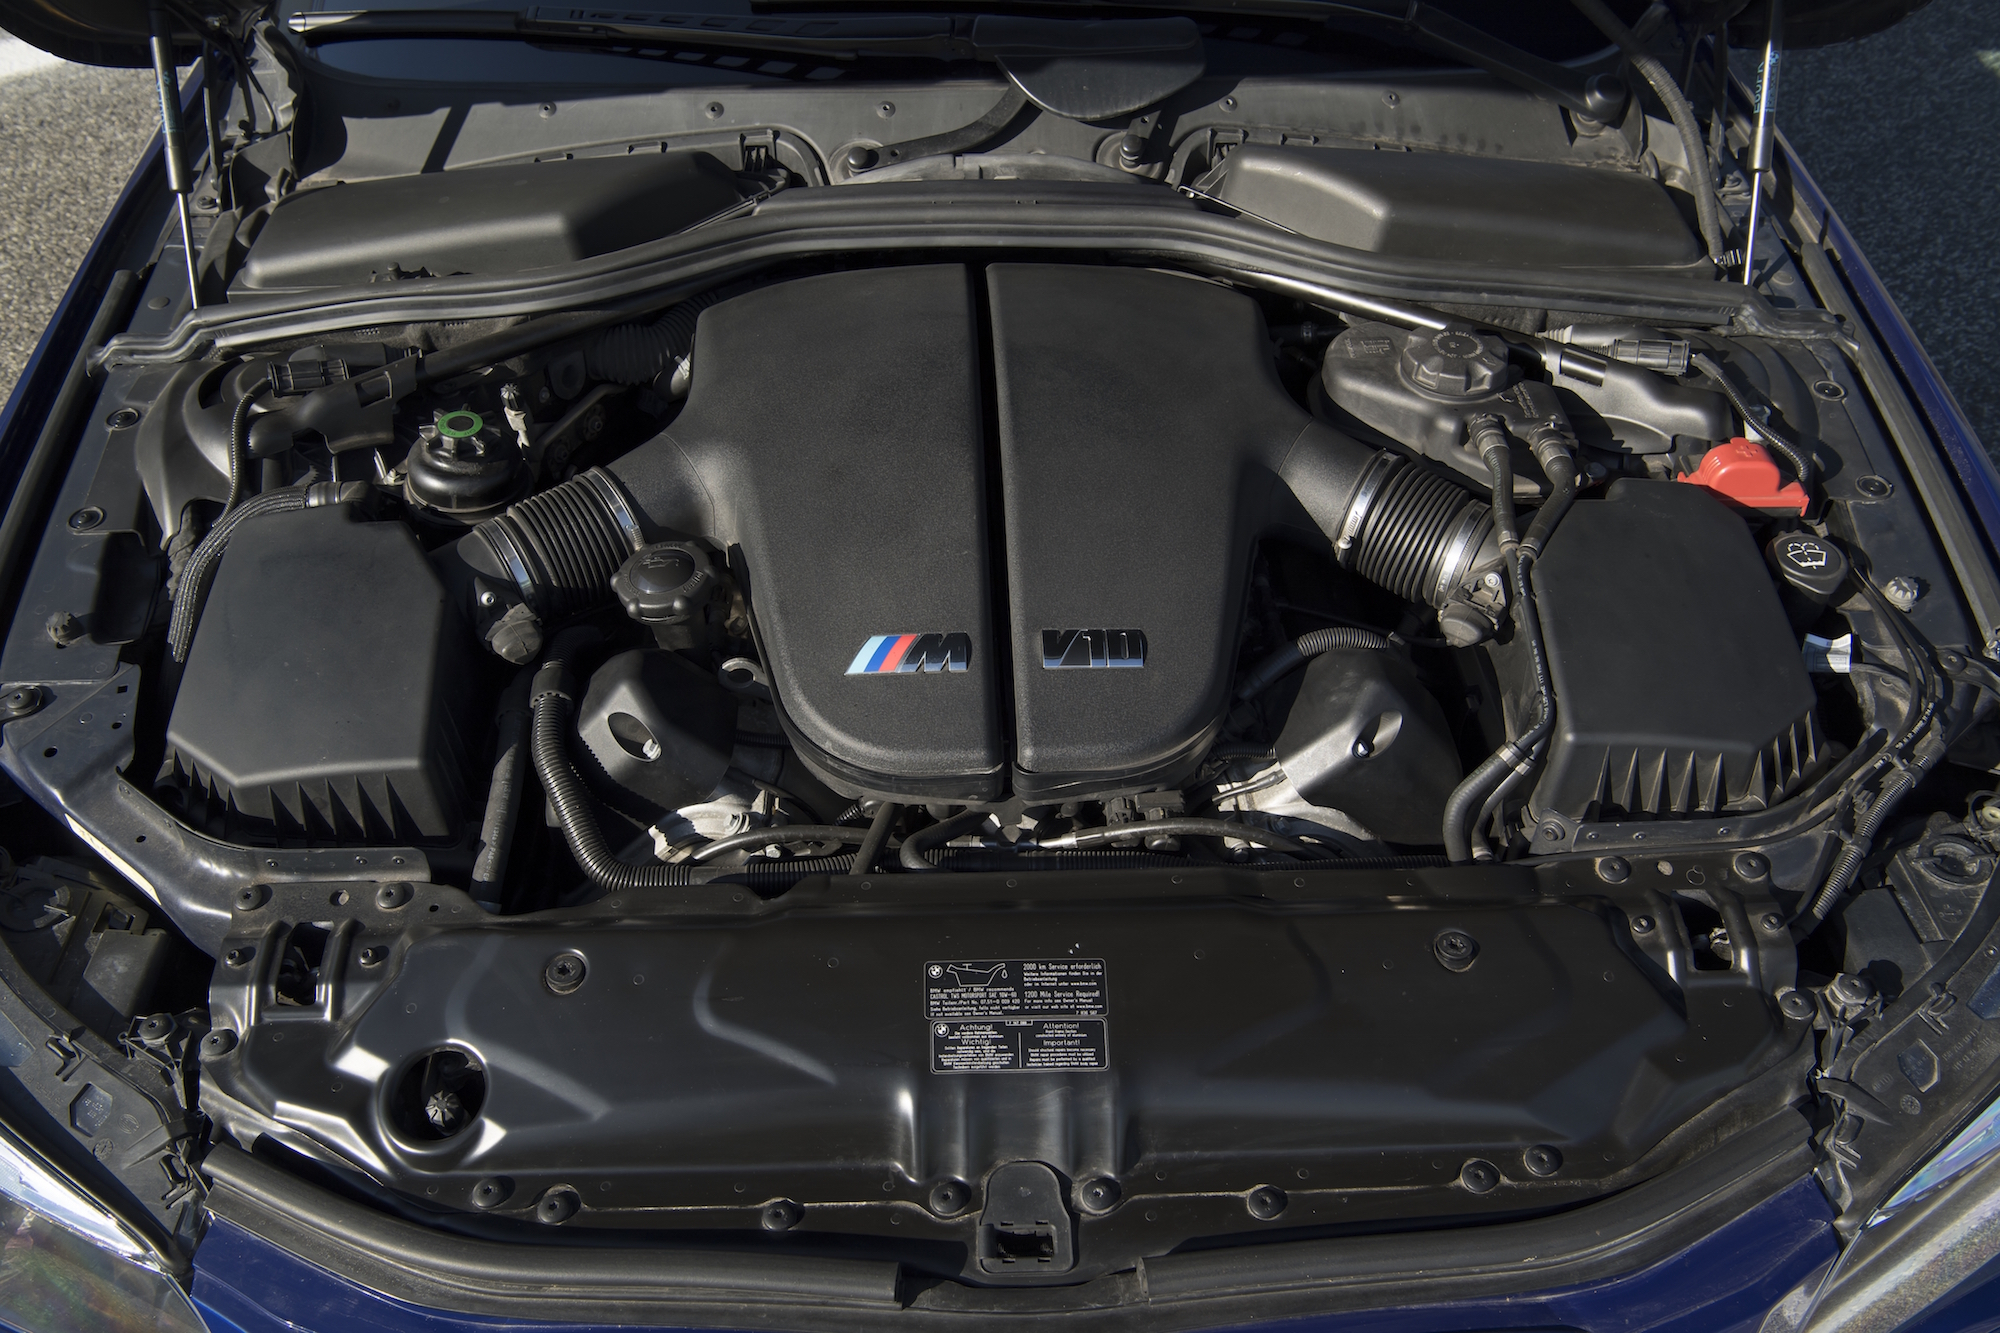 e60 m5 engine issues